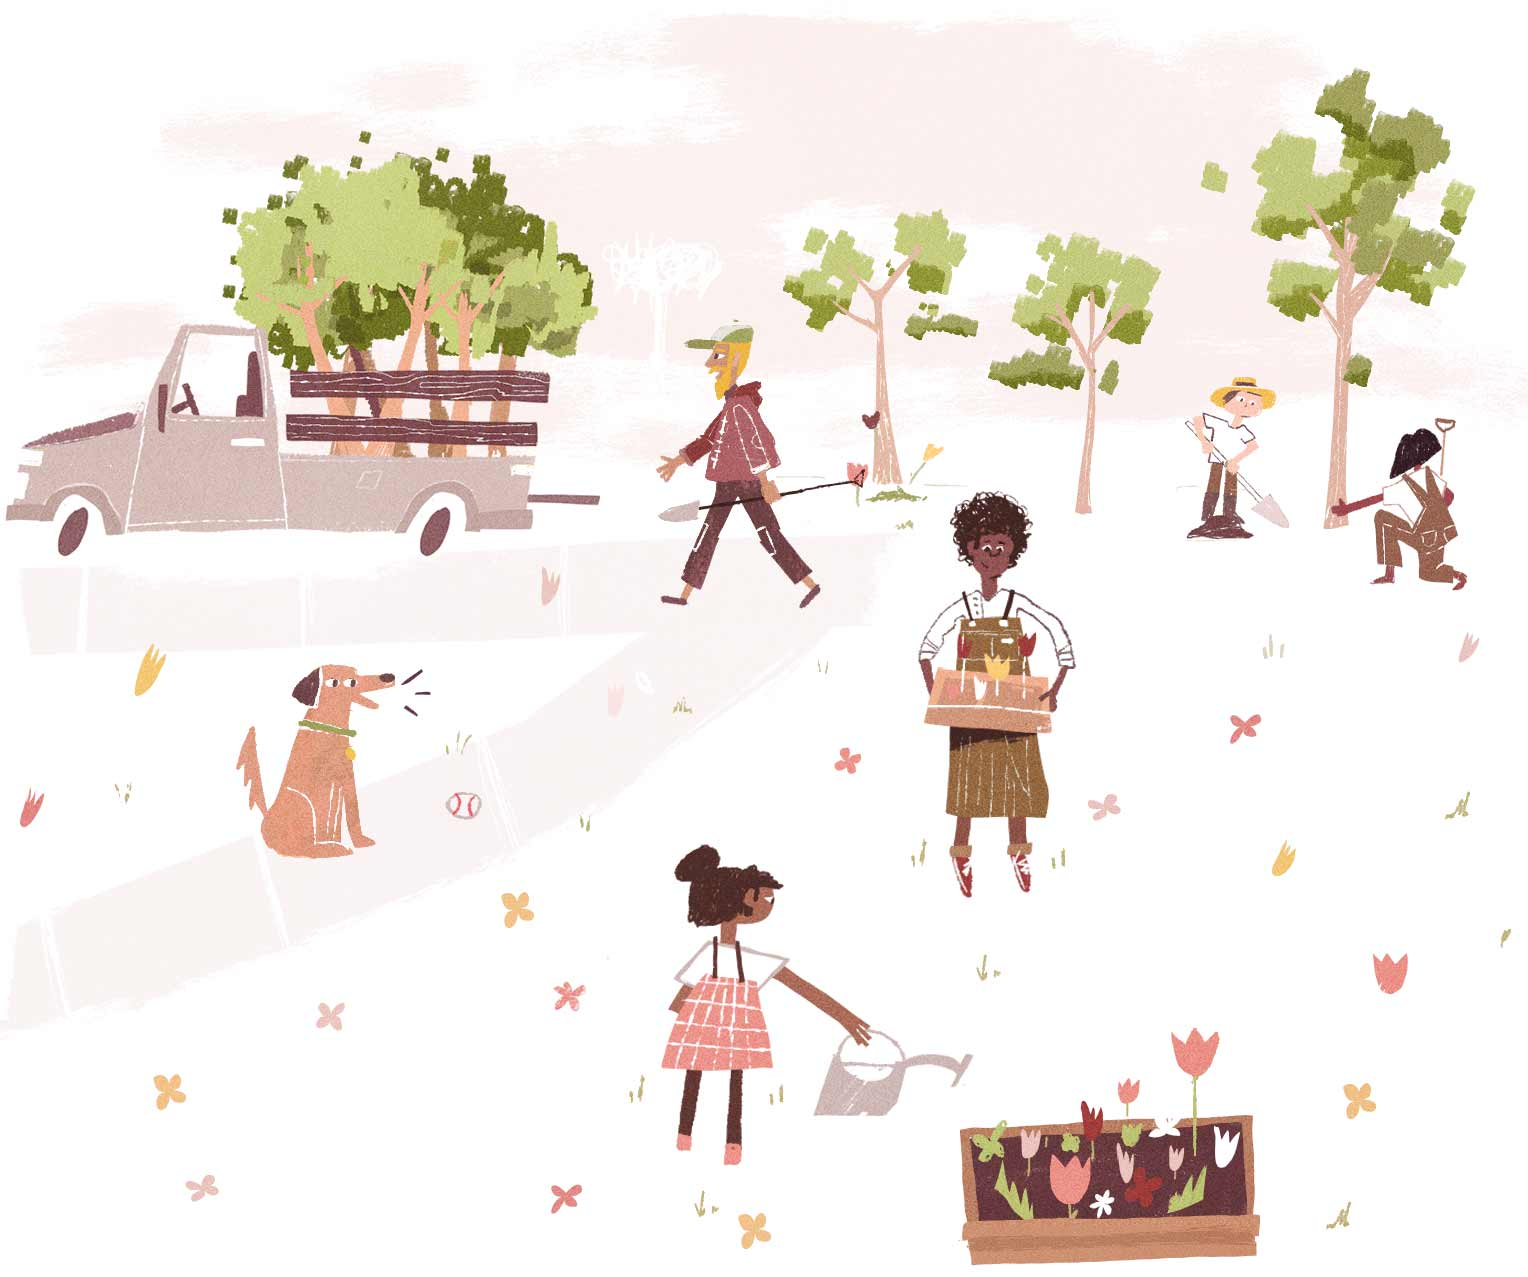 Event Management - Community Members Cleaning a Park Illustration